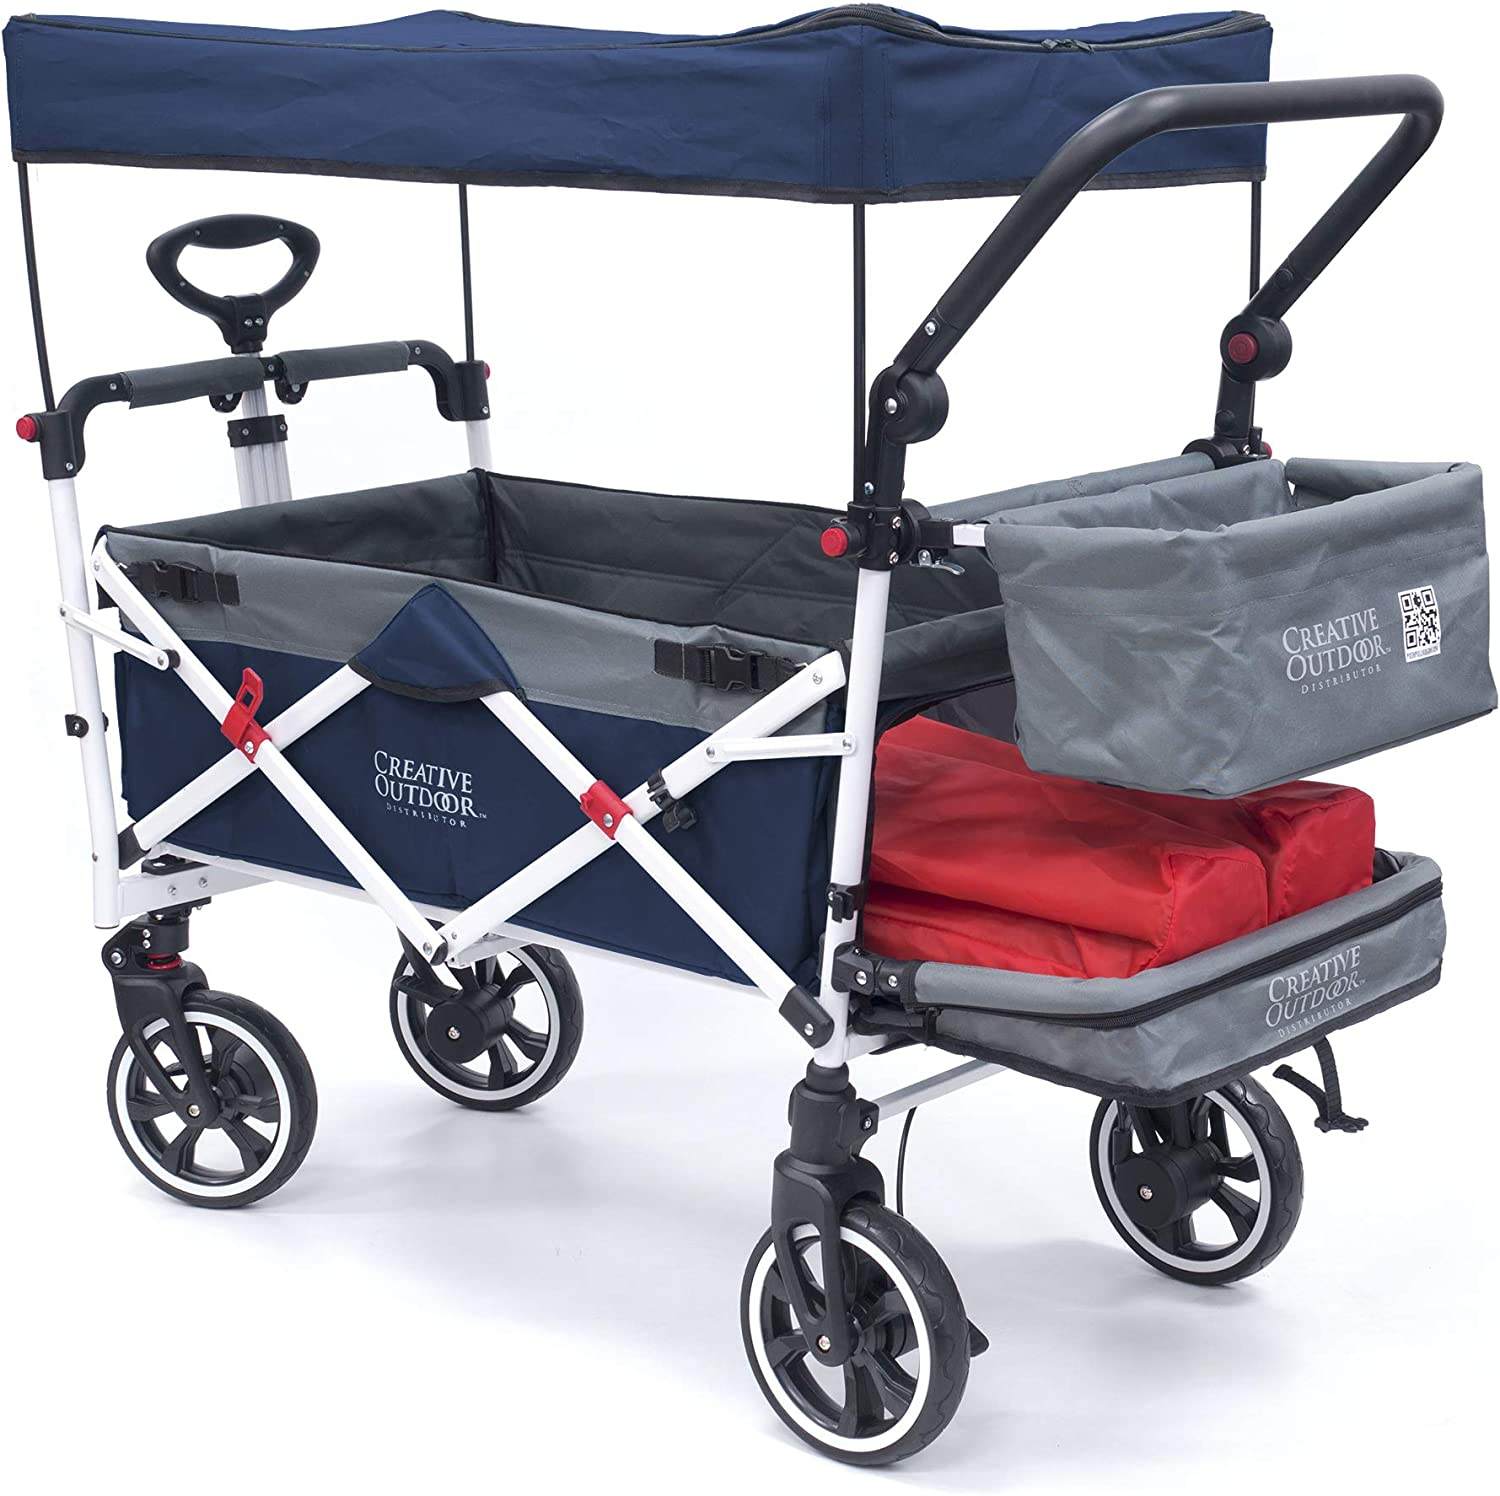 Creative Outdoor Push Pull Collapsible Folding Wagon Stroller Cart for Kids